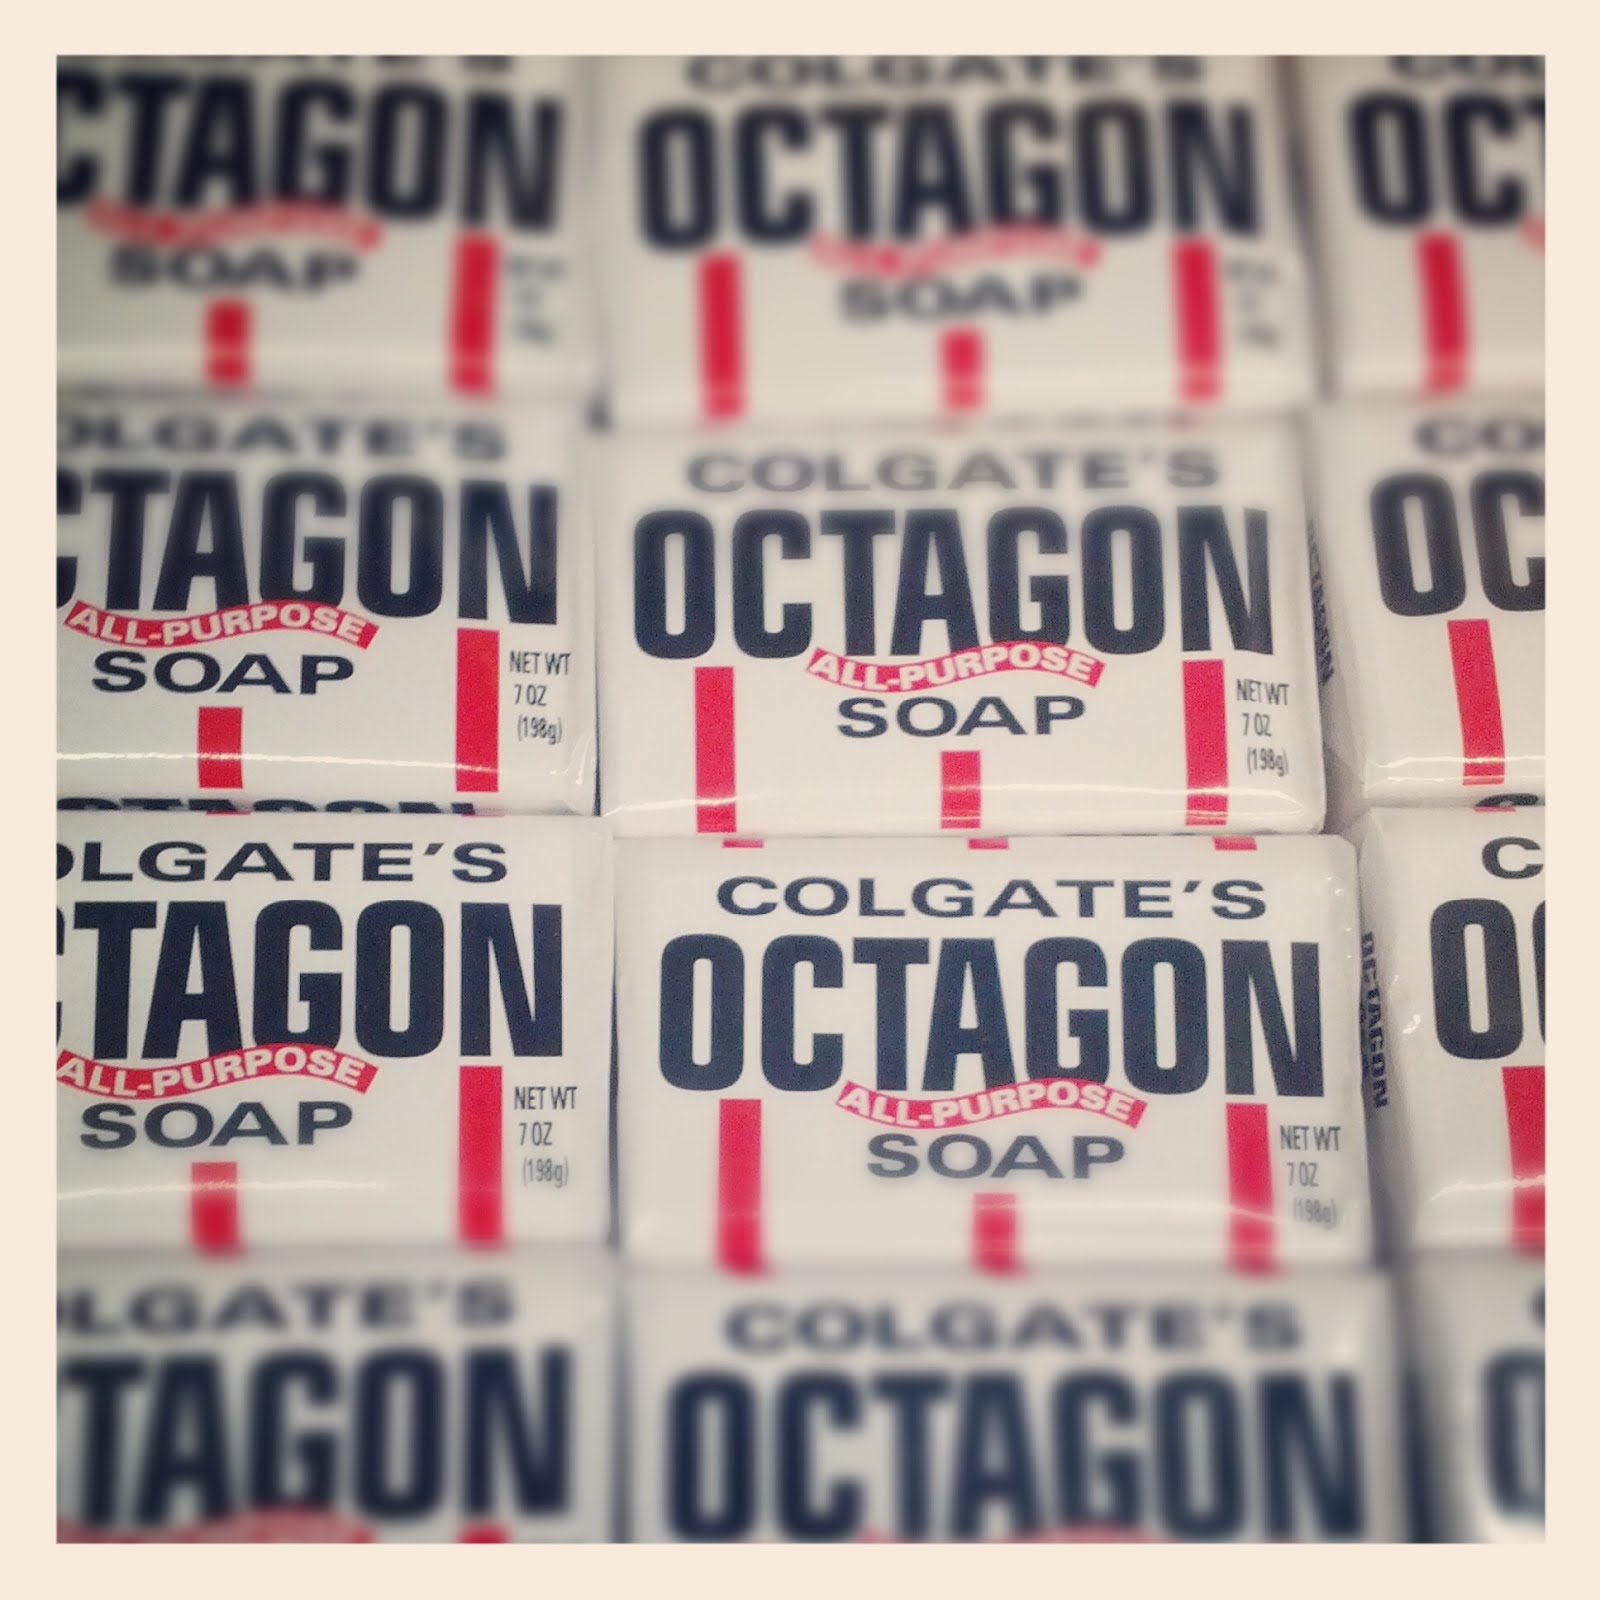 Octagon soap acne